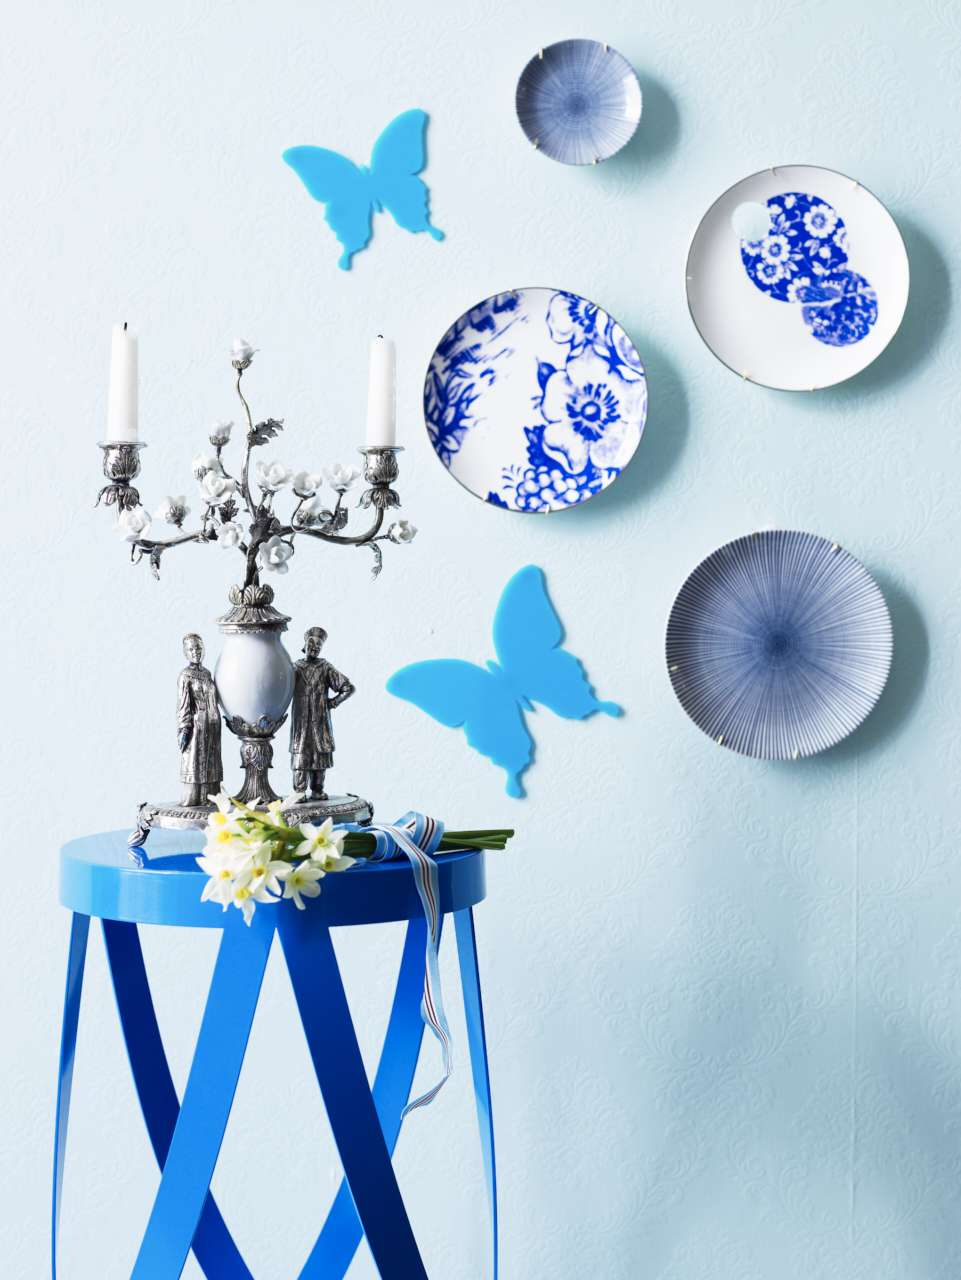 CIN-00031657 Blue Candle Stick Plates & Stool-012